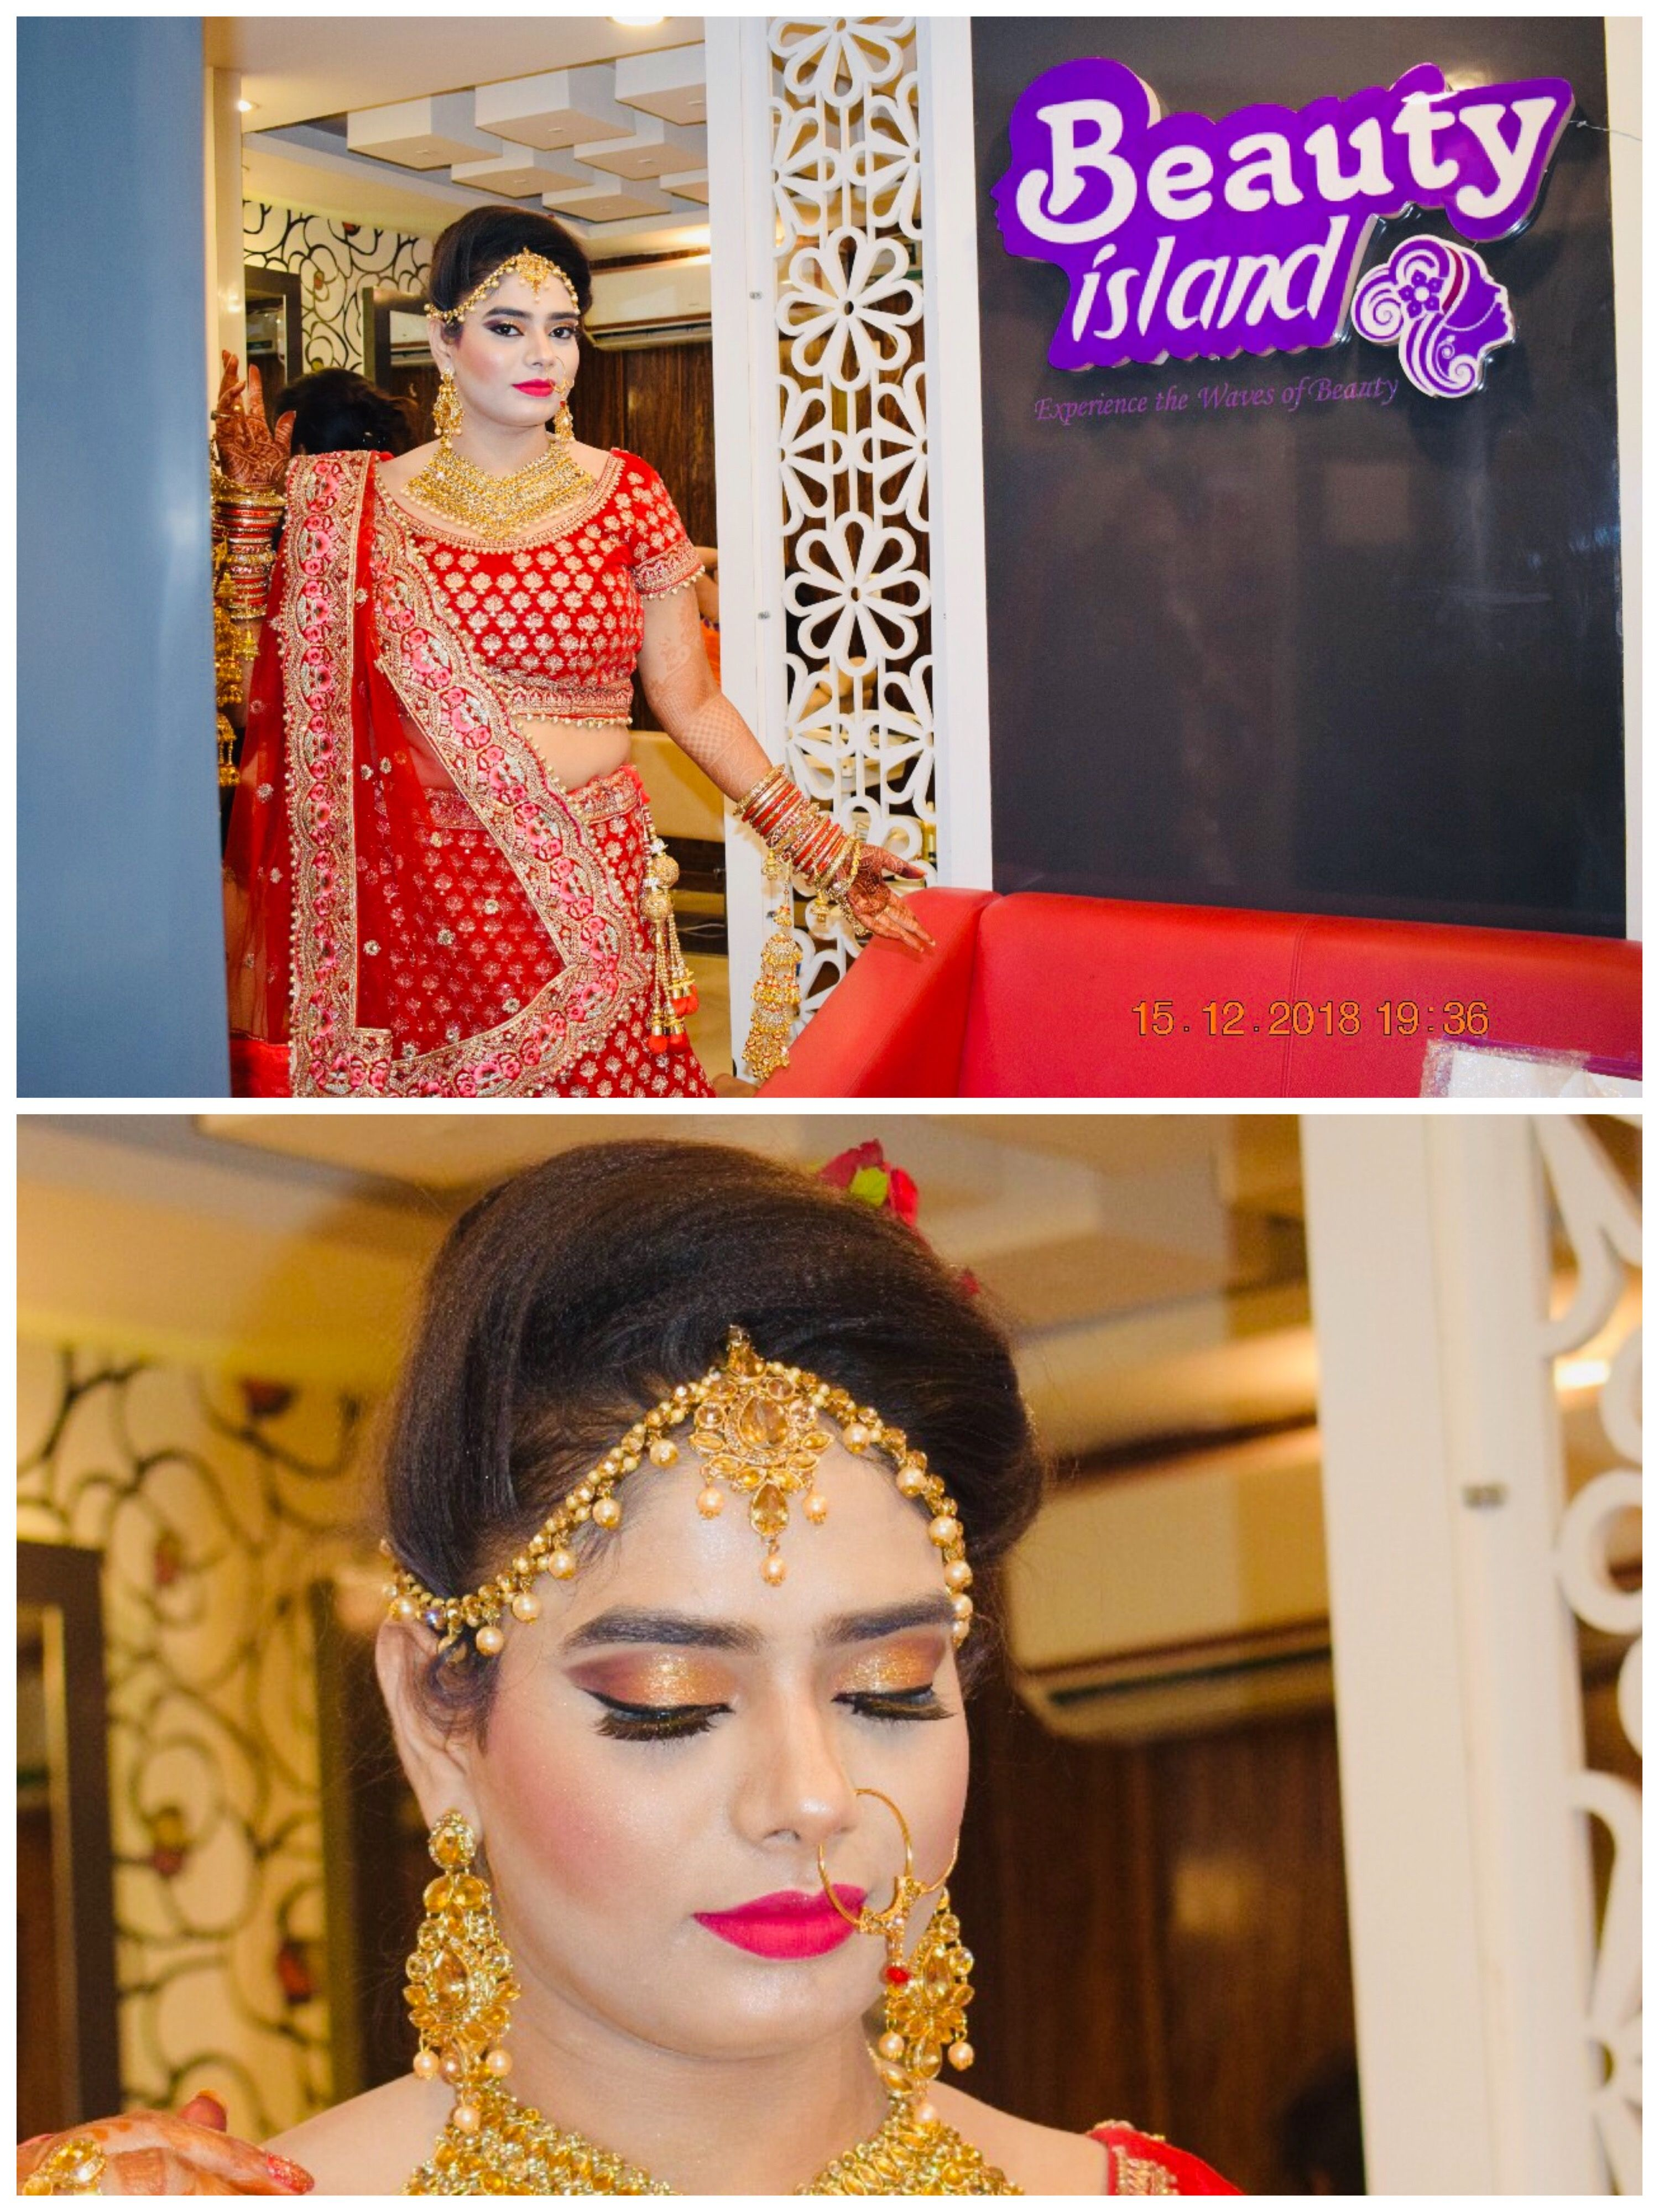 Pin by Beauty Island Patna on Best airbrush makeup in